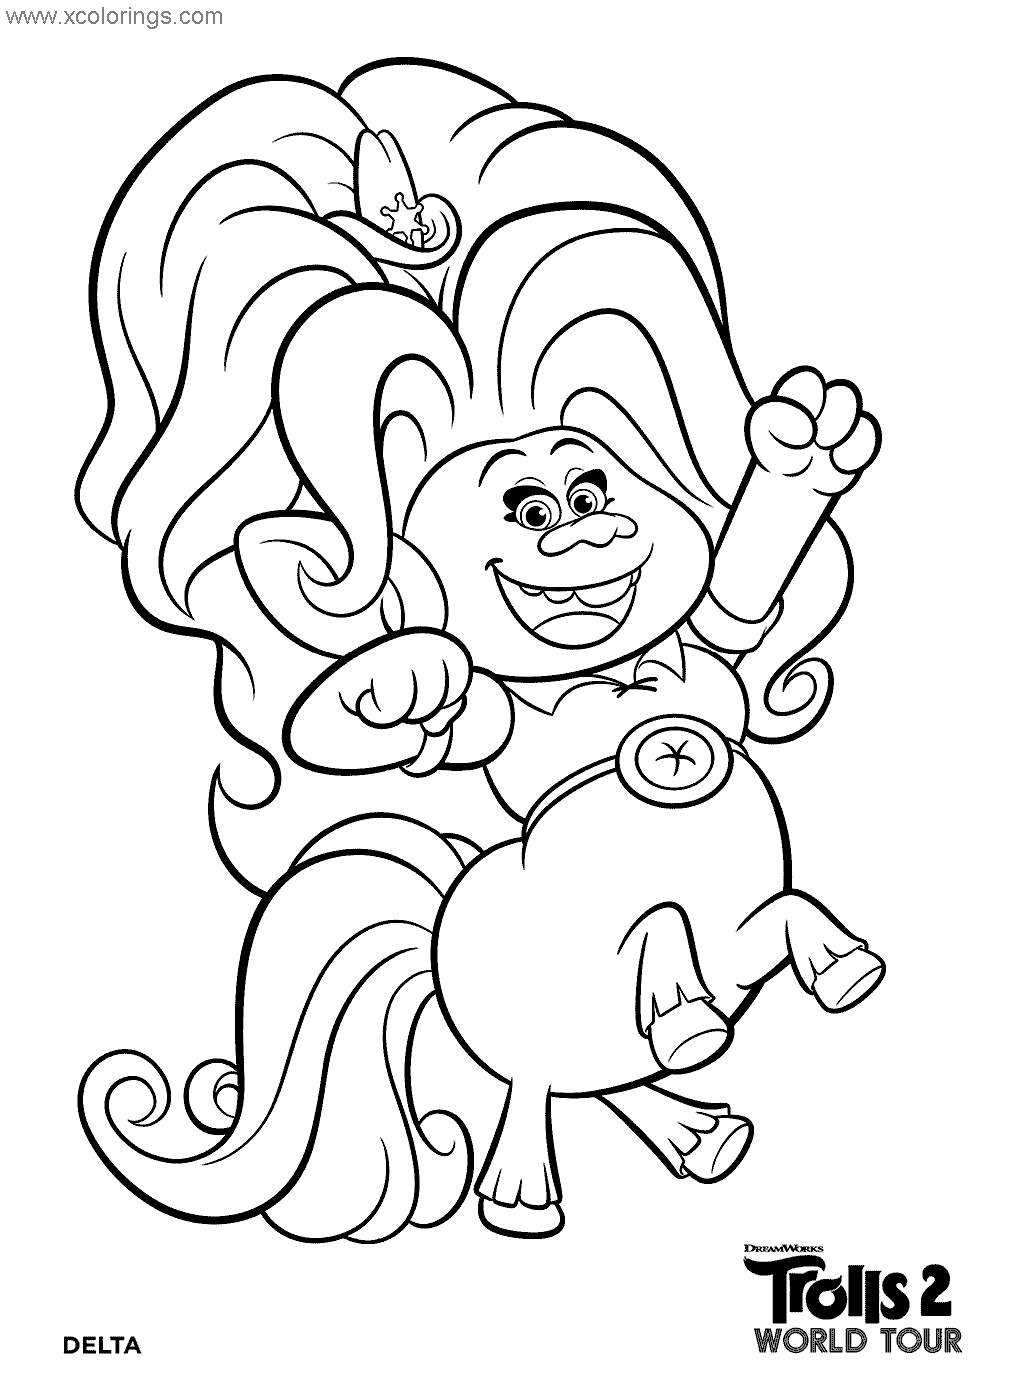 trolls world tour coloring pages - coloring home